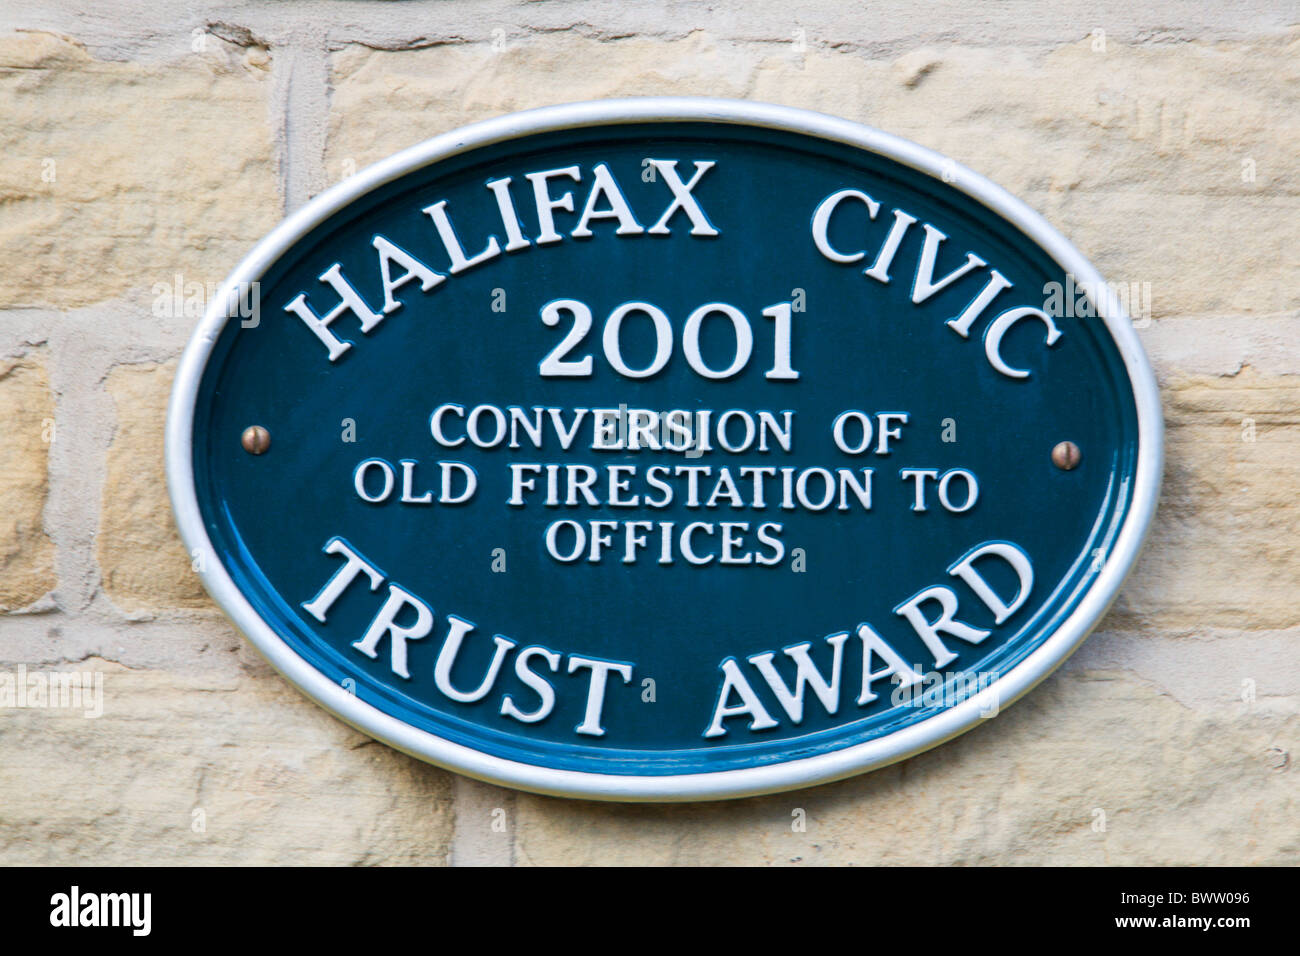 Civic Trust Award Plaque on old Fire Station at Dean Clough Halifax West Yorkshire England - Stock Image